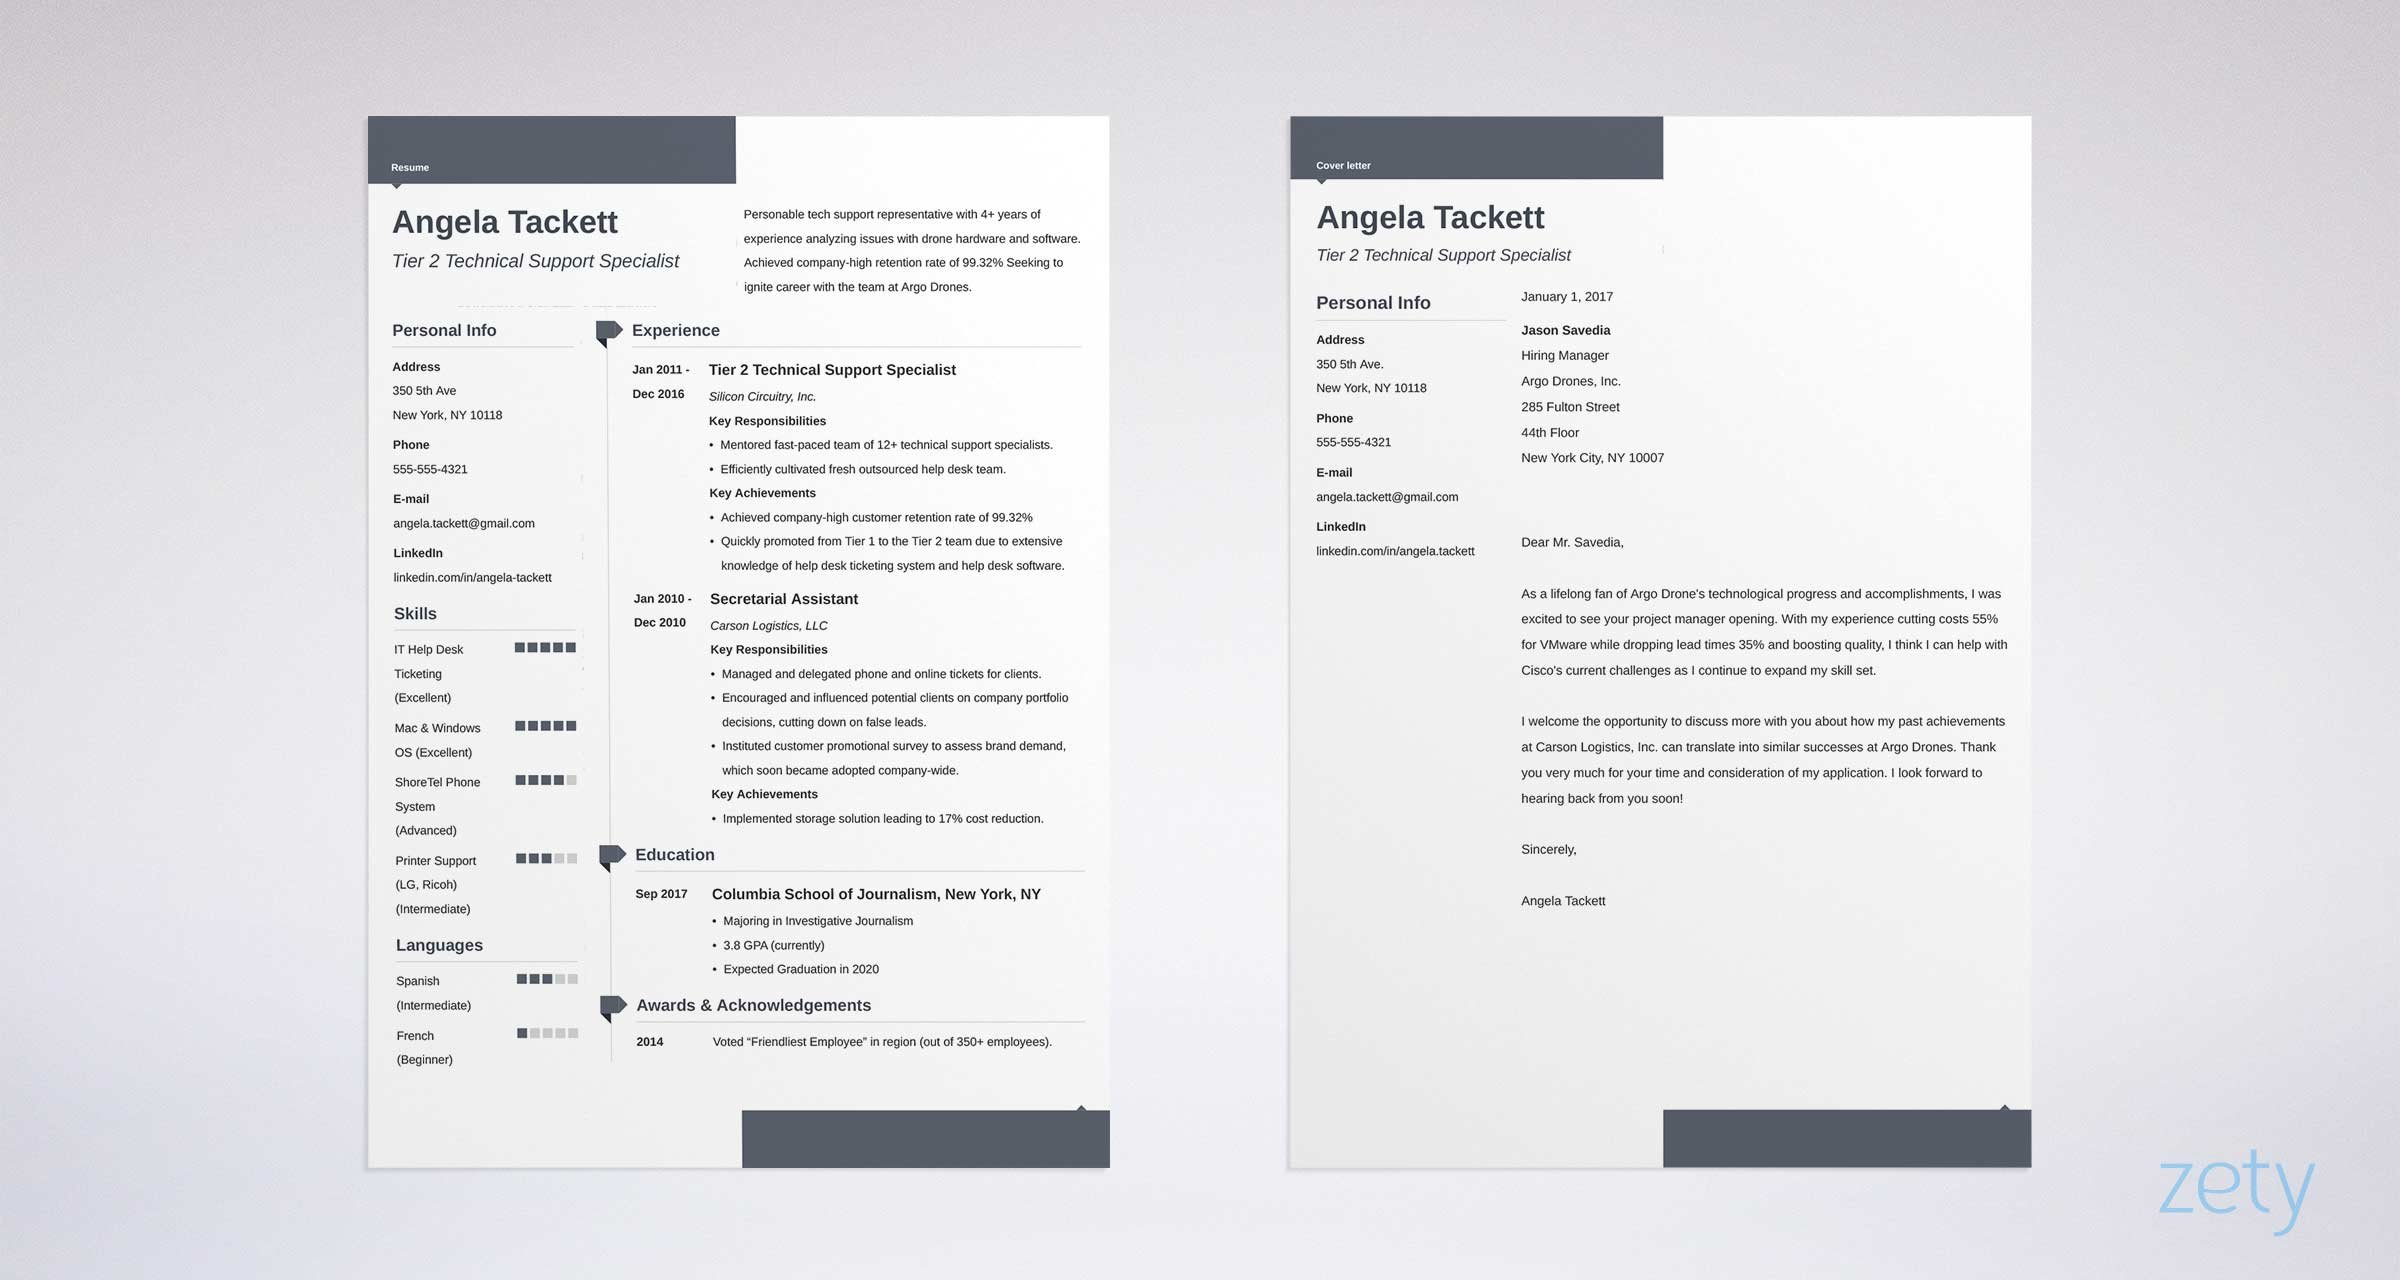 Free Resume Templates 17 Downloadable Resume Templates To Use - Resume-letter-templates-free